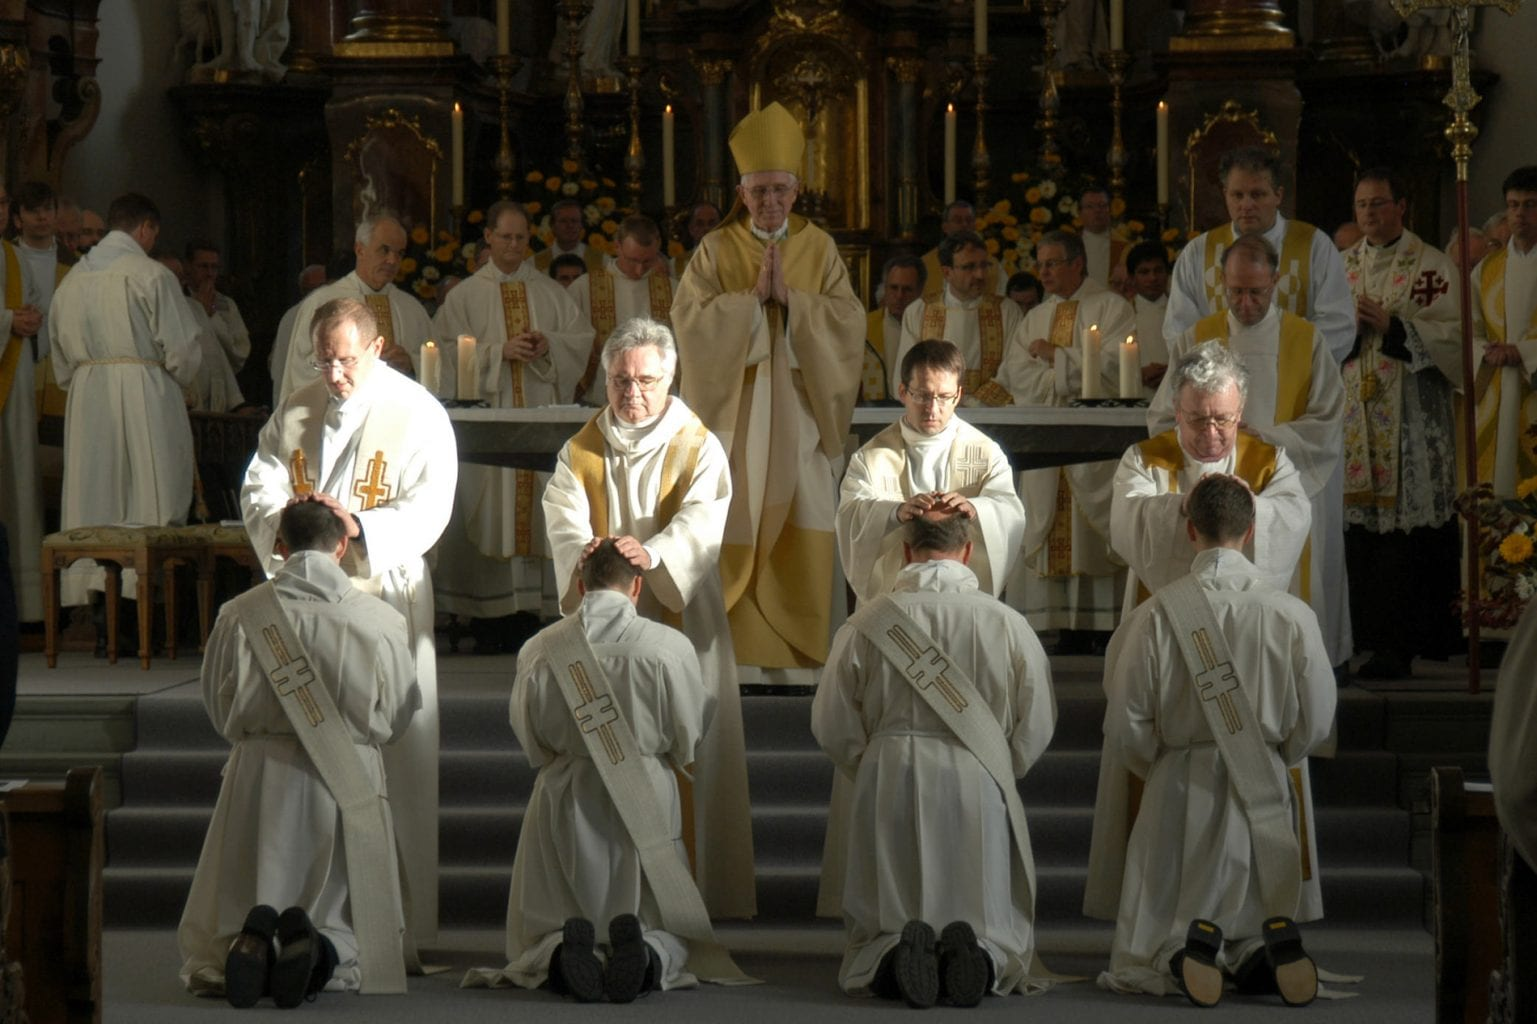 Clarifications on Reserving Priestly Ordination to Men Alone-Joseph Cardinal Ratzinger